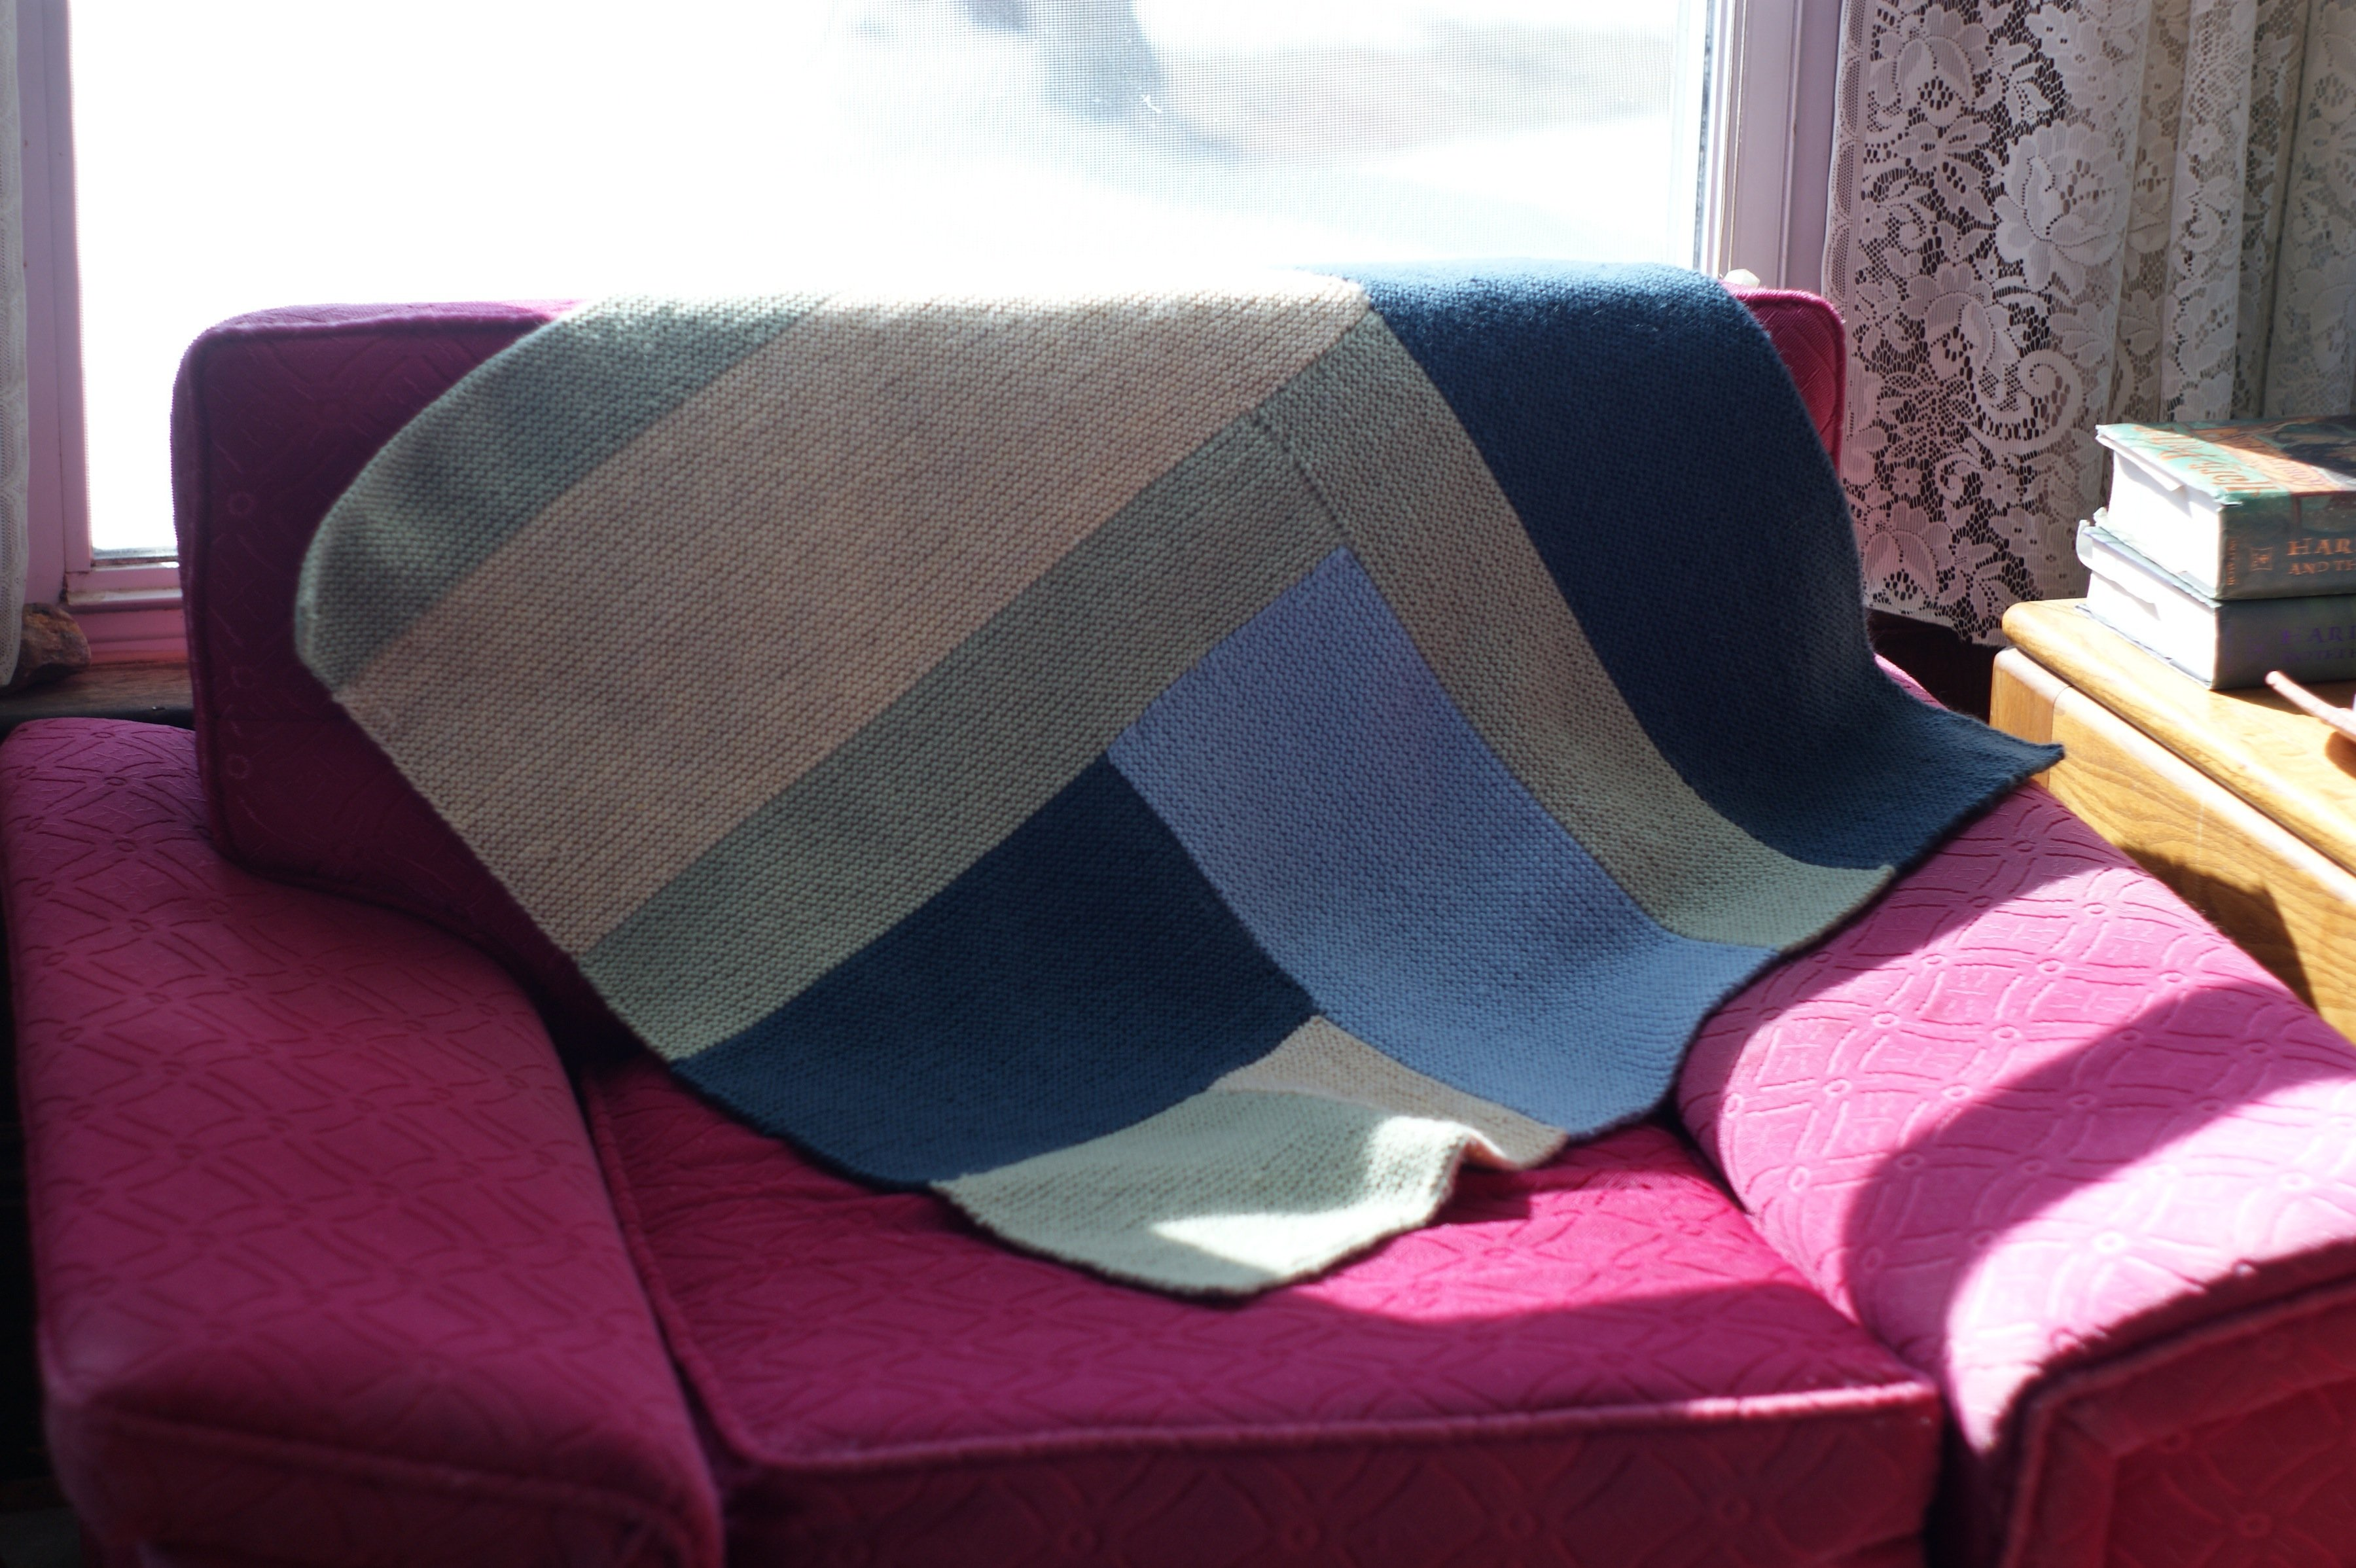 Winter knitting project finished